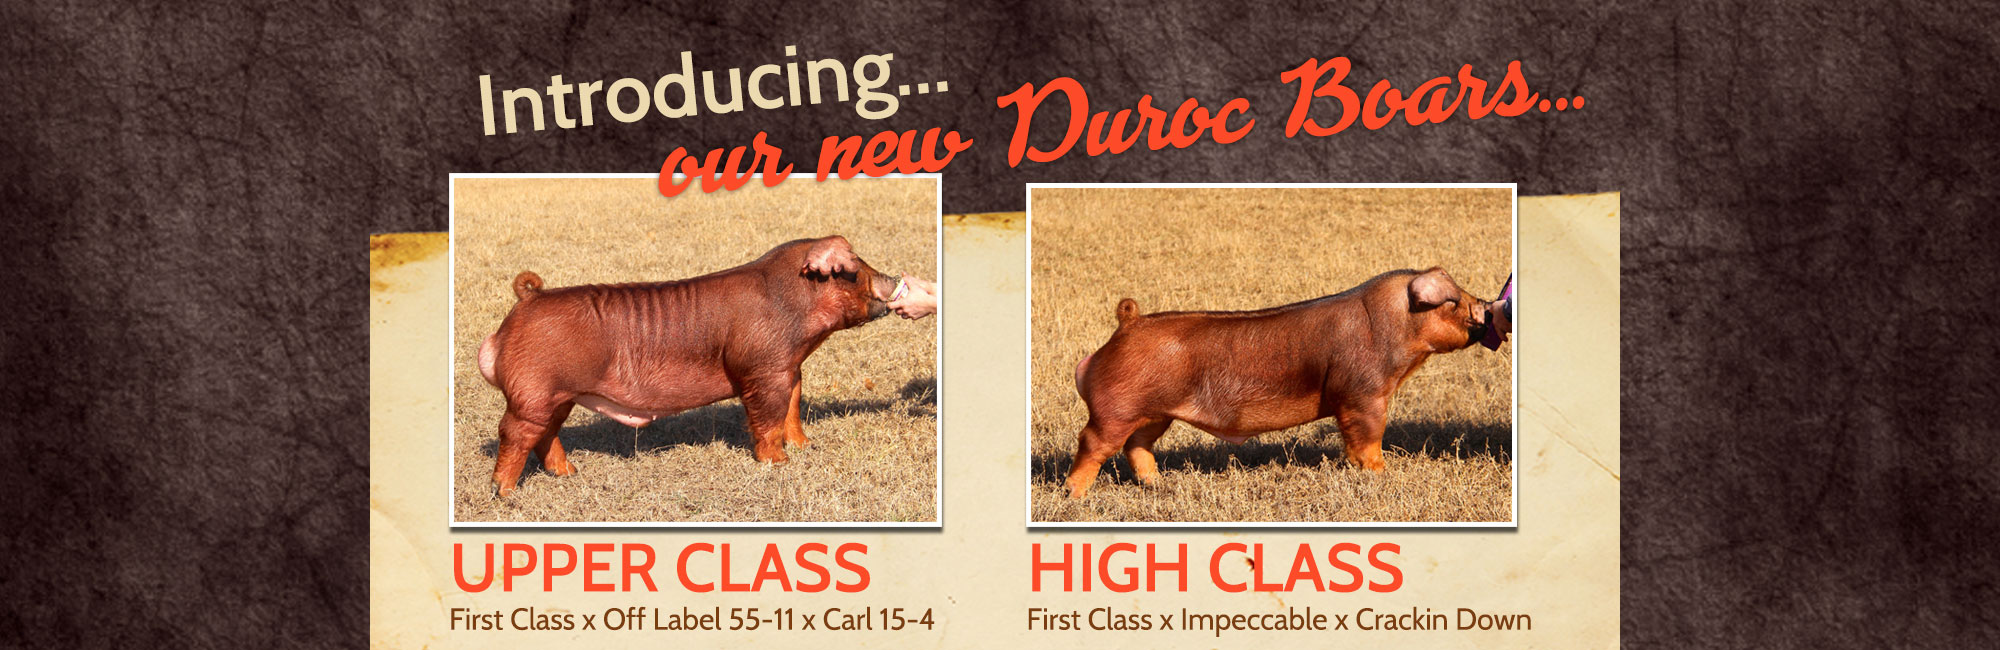 Introducing our new Duroc Boars